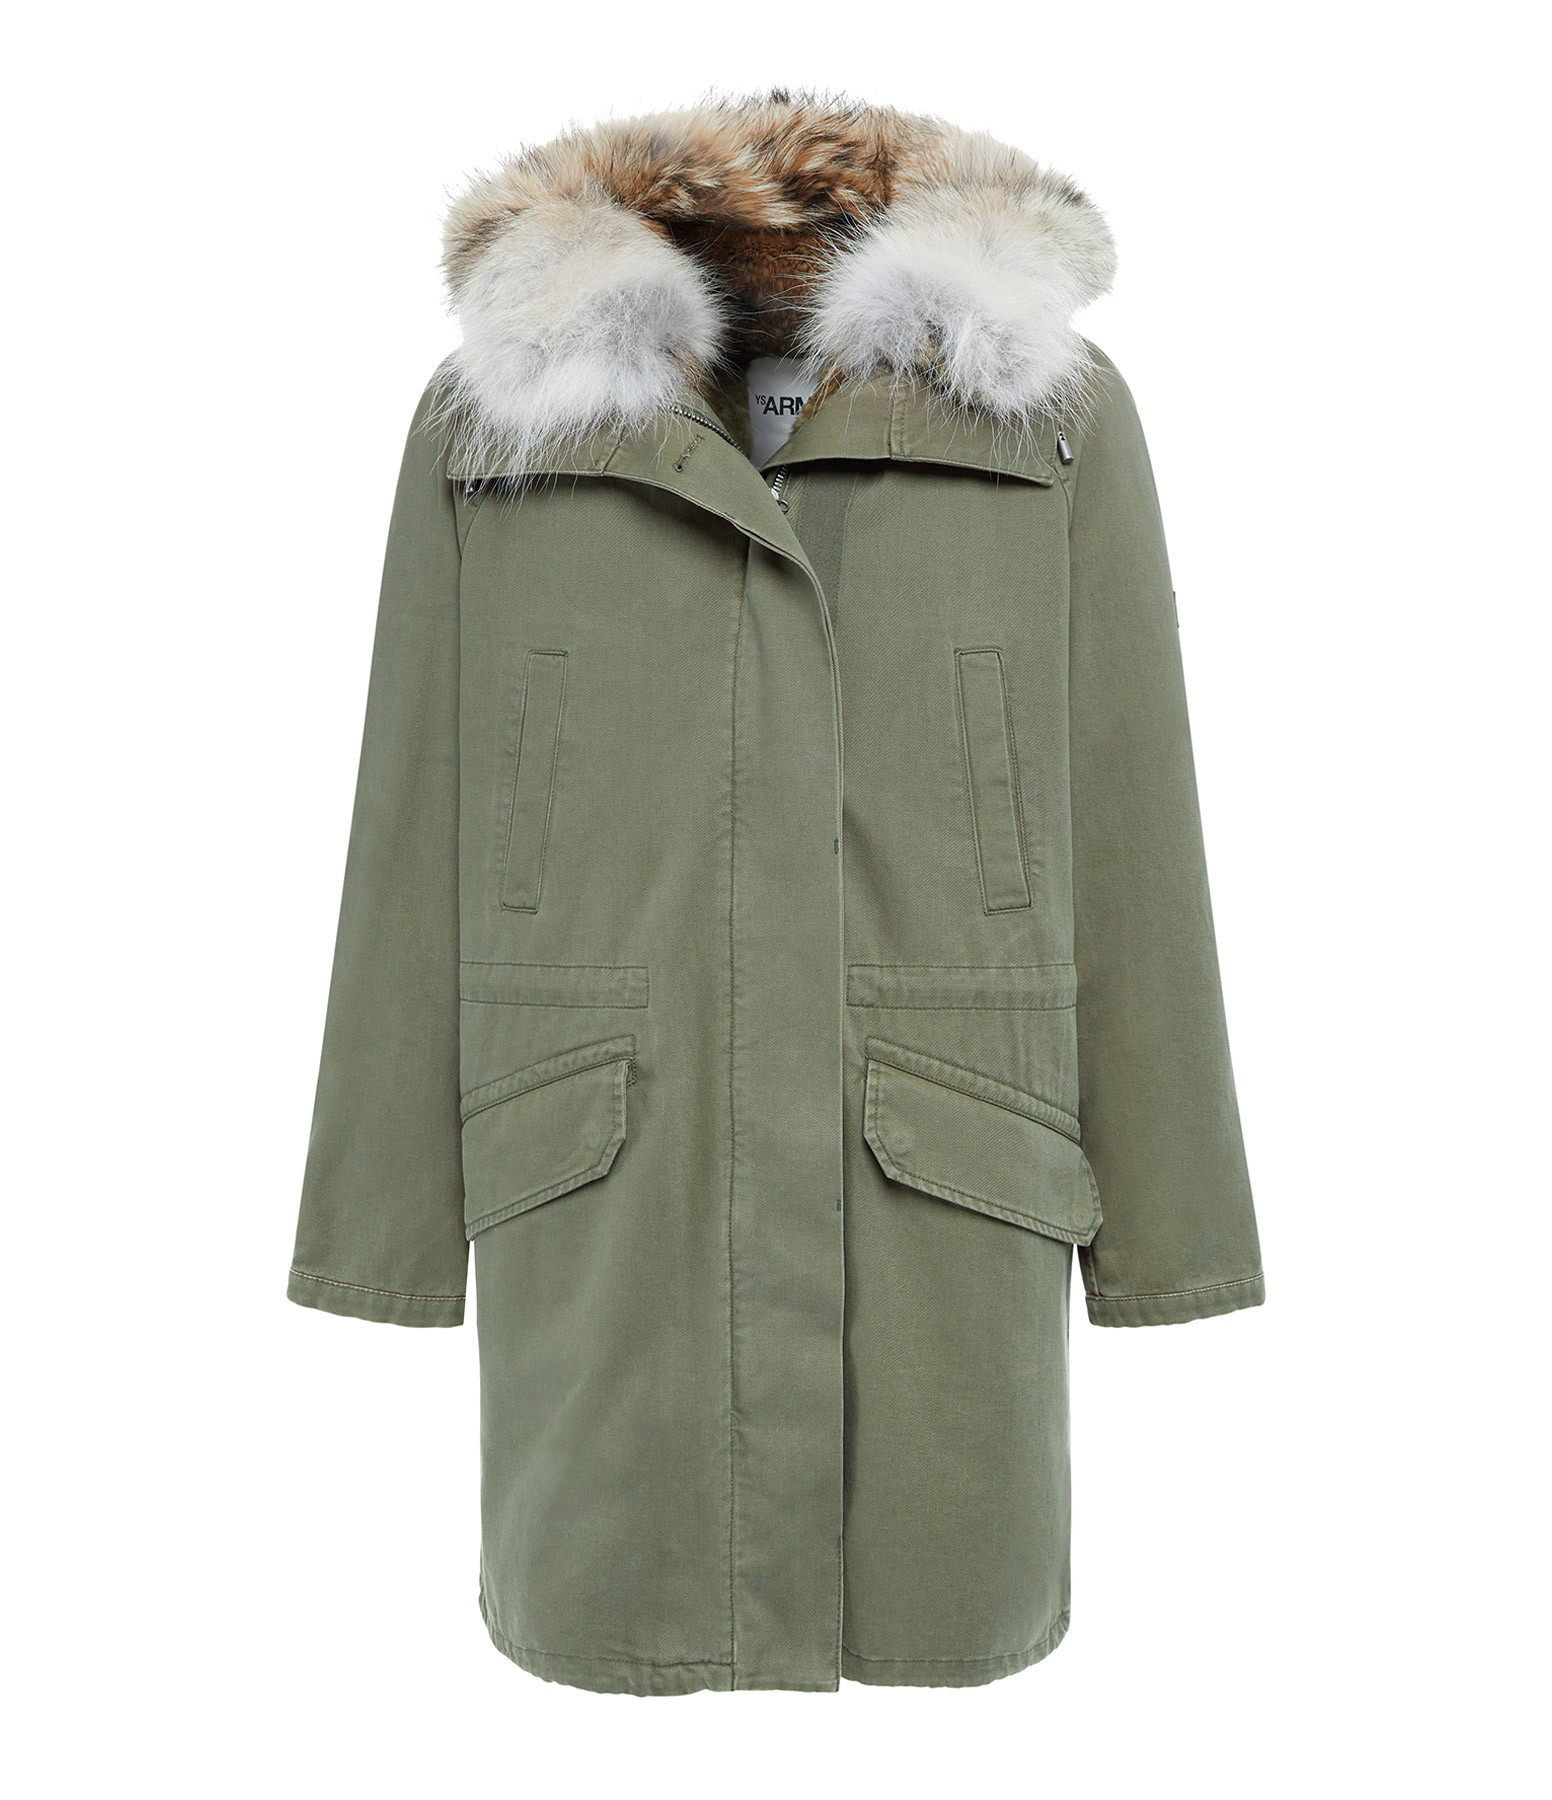 YVES SALOMON - ARMY - Parka Coton Lapin Coyote Vert Chasseur Naturel